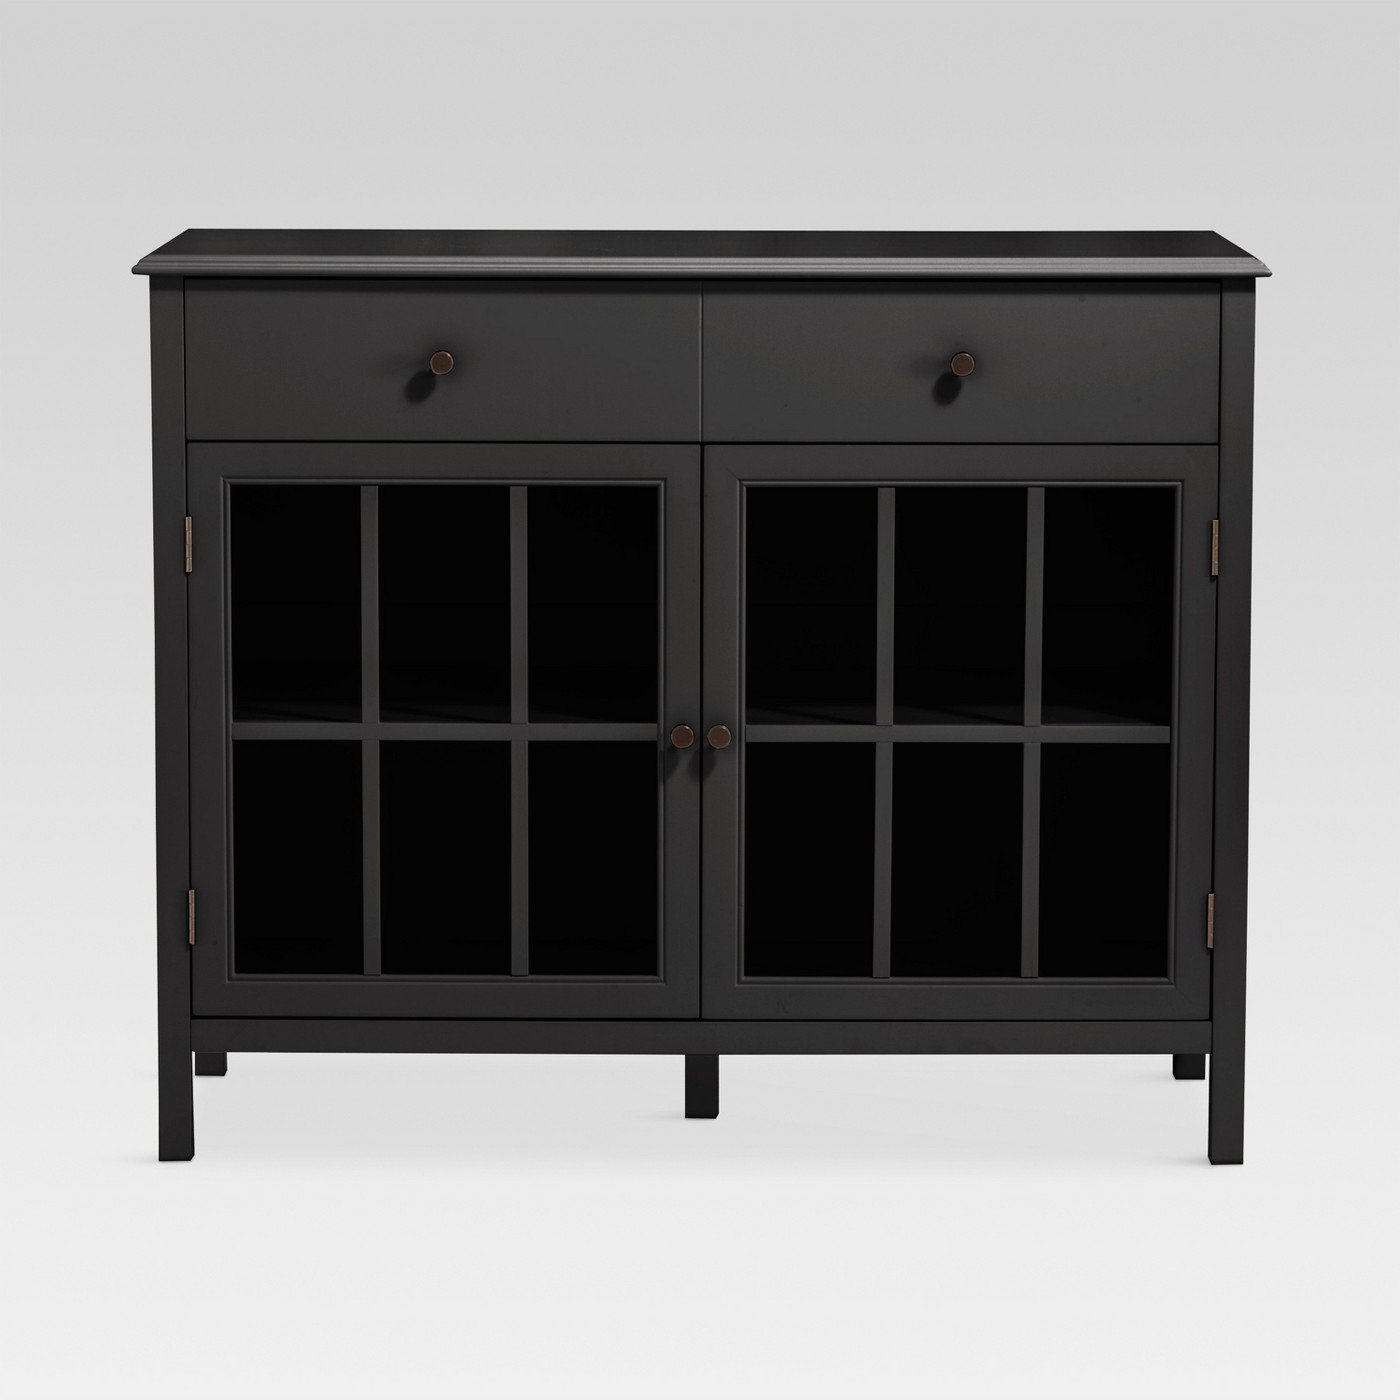 Barn Wood Rosendale Carved Accent Ashley Furniture Glass Throughout Kattie 4 Door Cabinets (View 7 of 20)